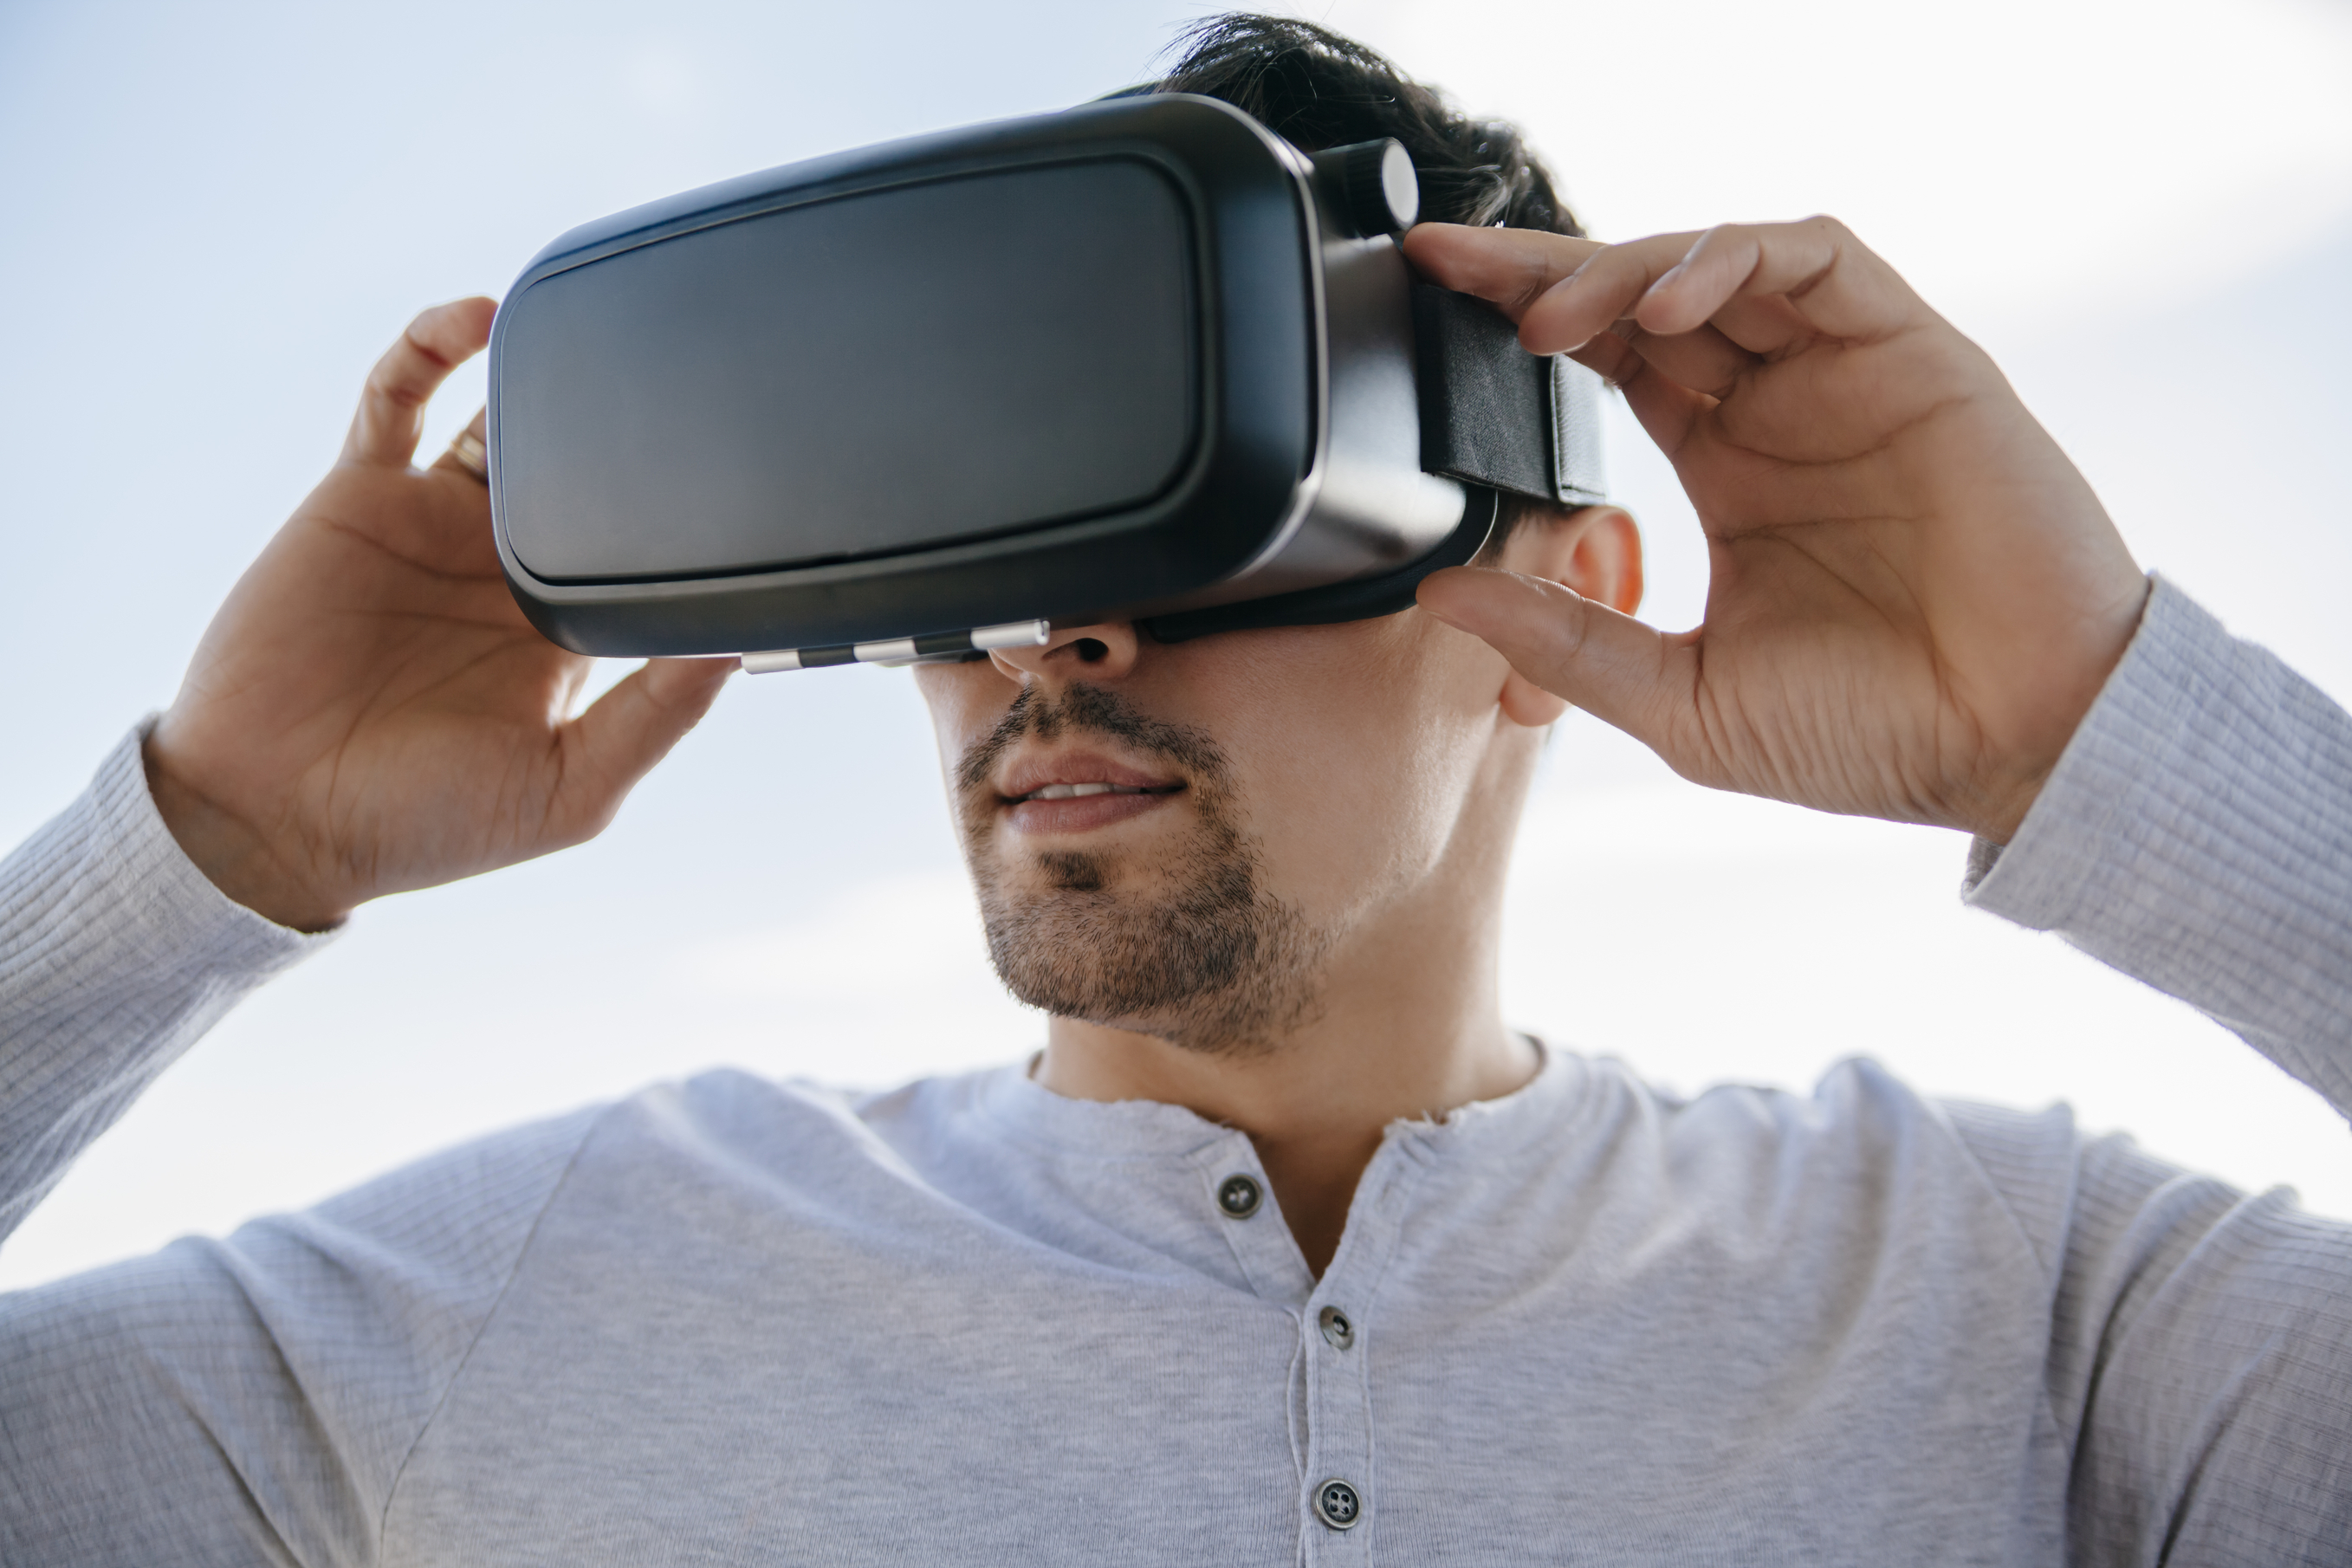 Man With Virtual Glasses.jpg